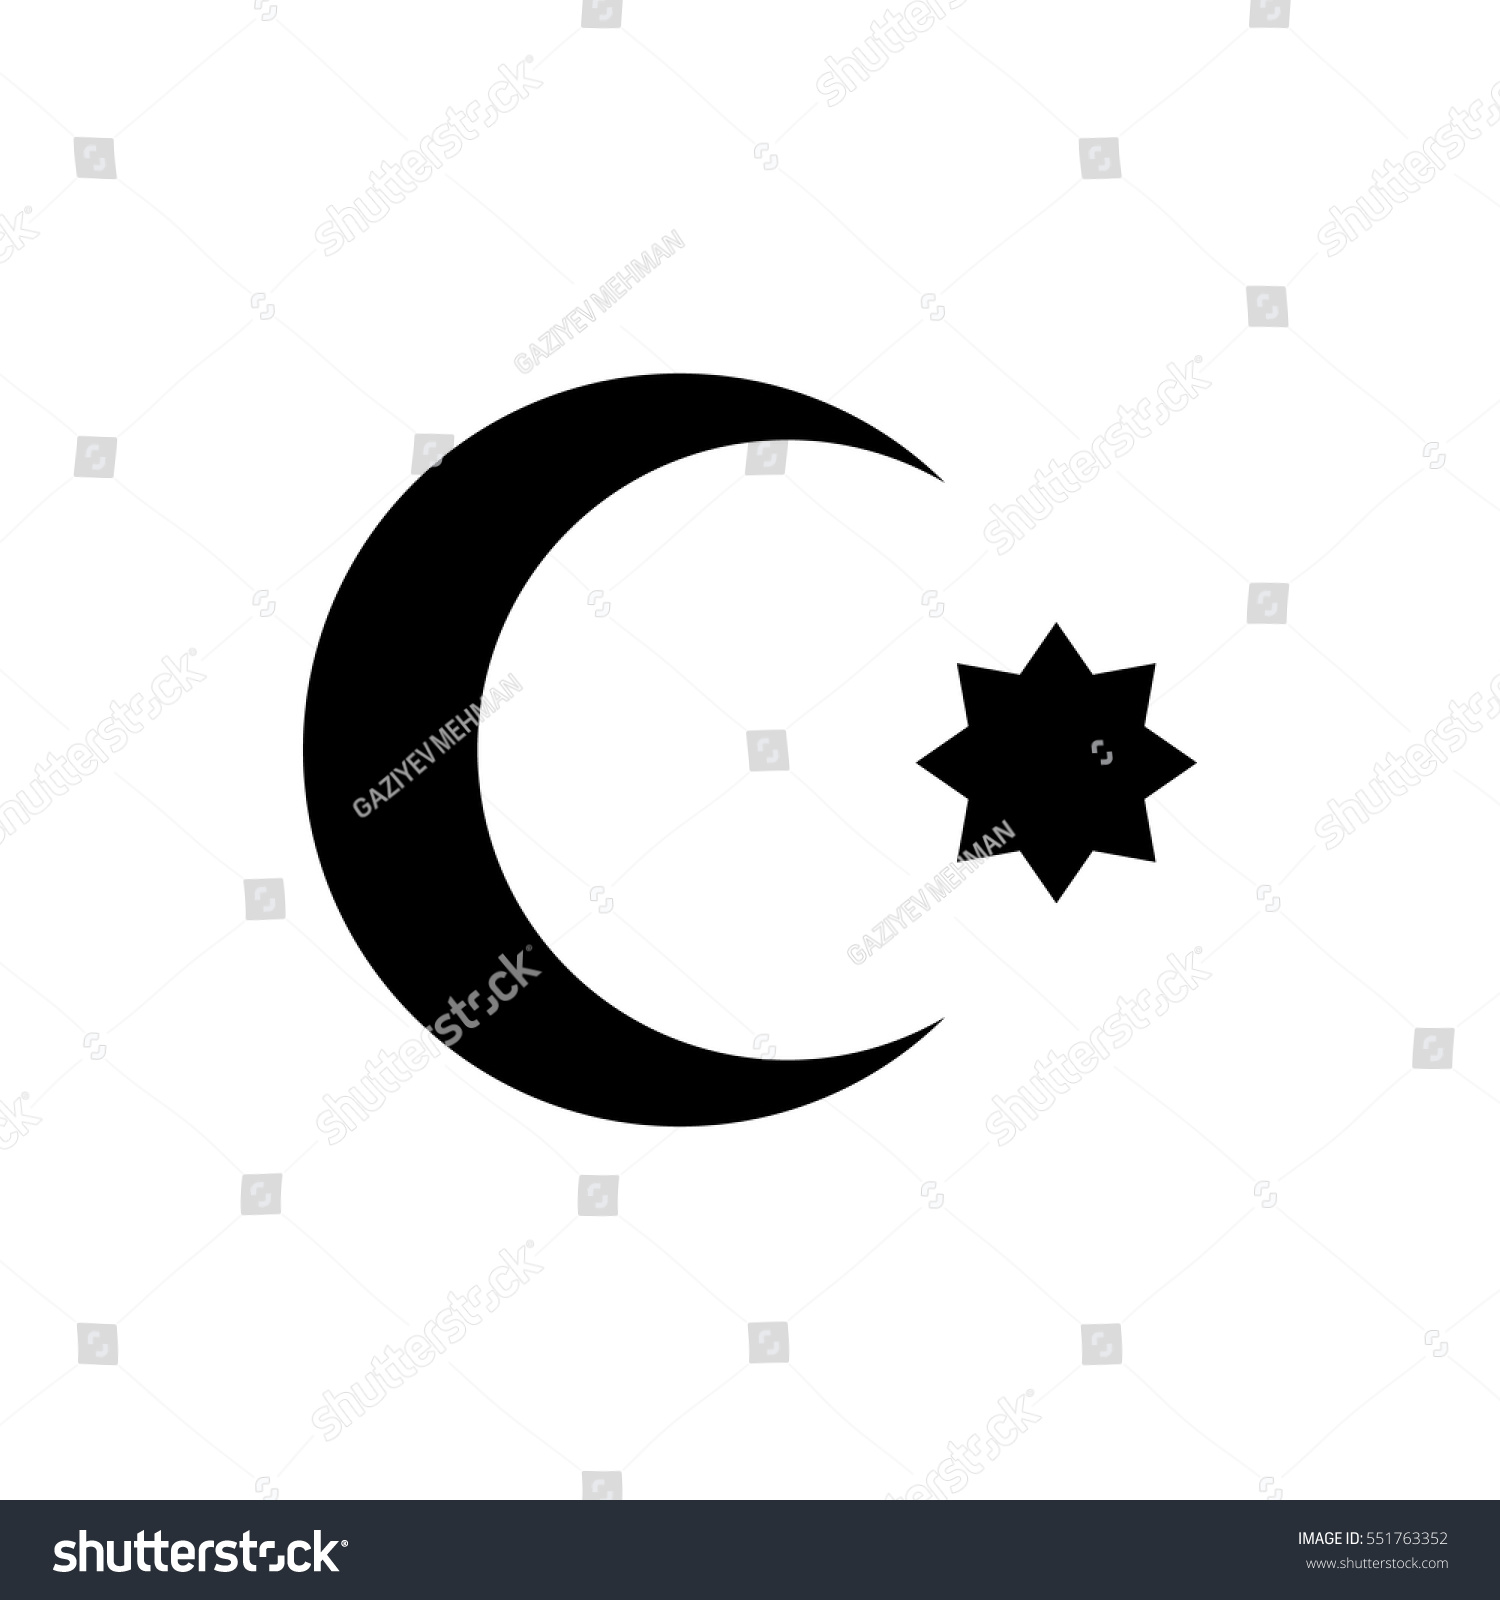 Symbol Islam Star Crescent Stock Vector Royalty Free 551763352